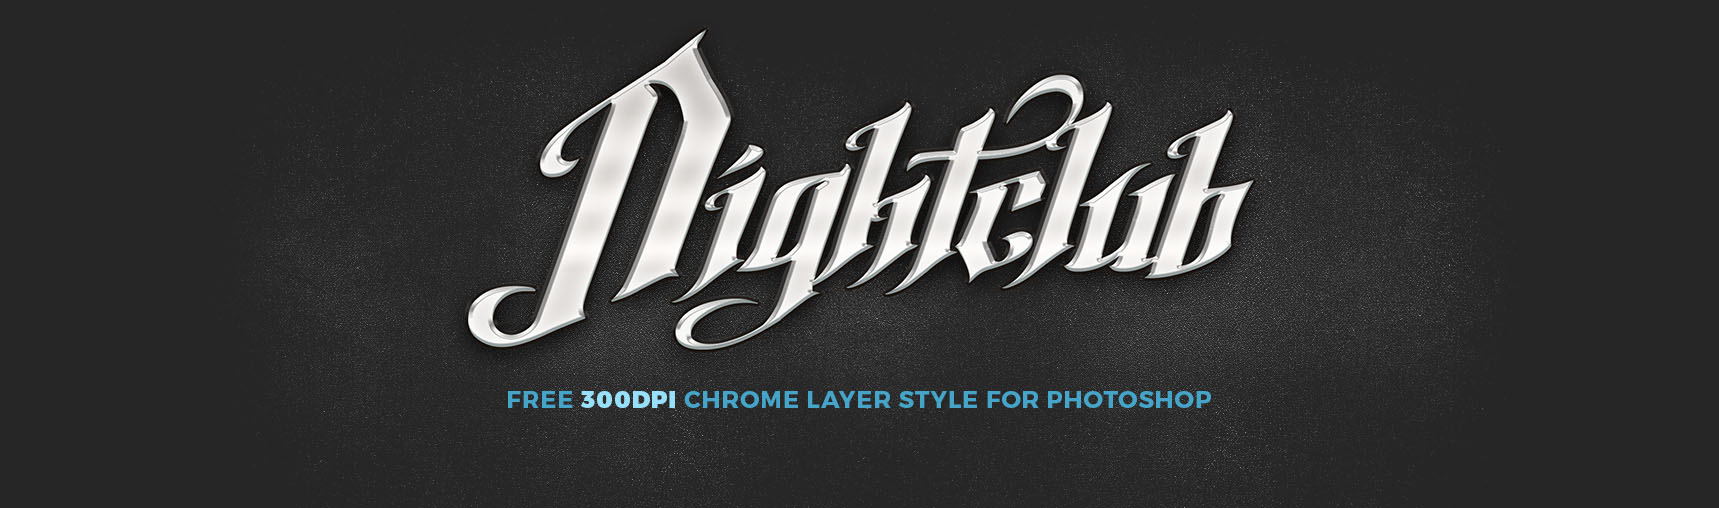 Free Chrome Layer Style for Photoshop